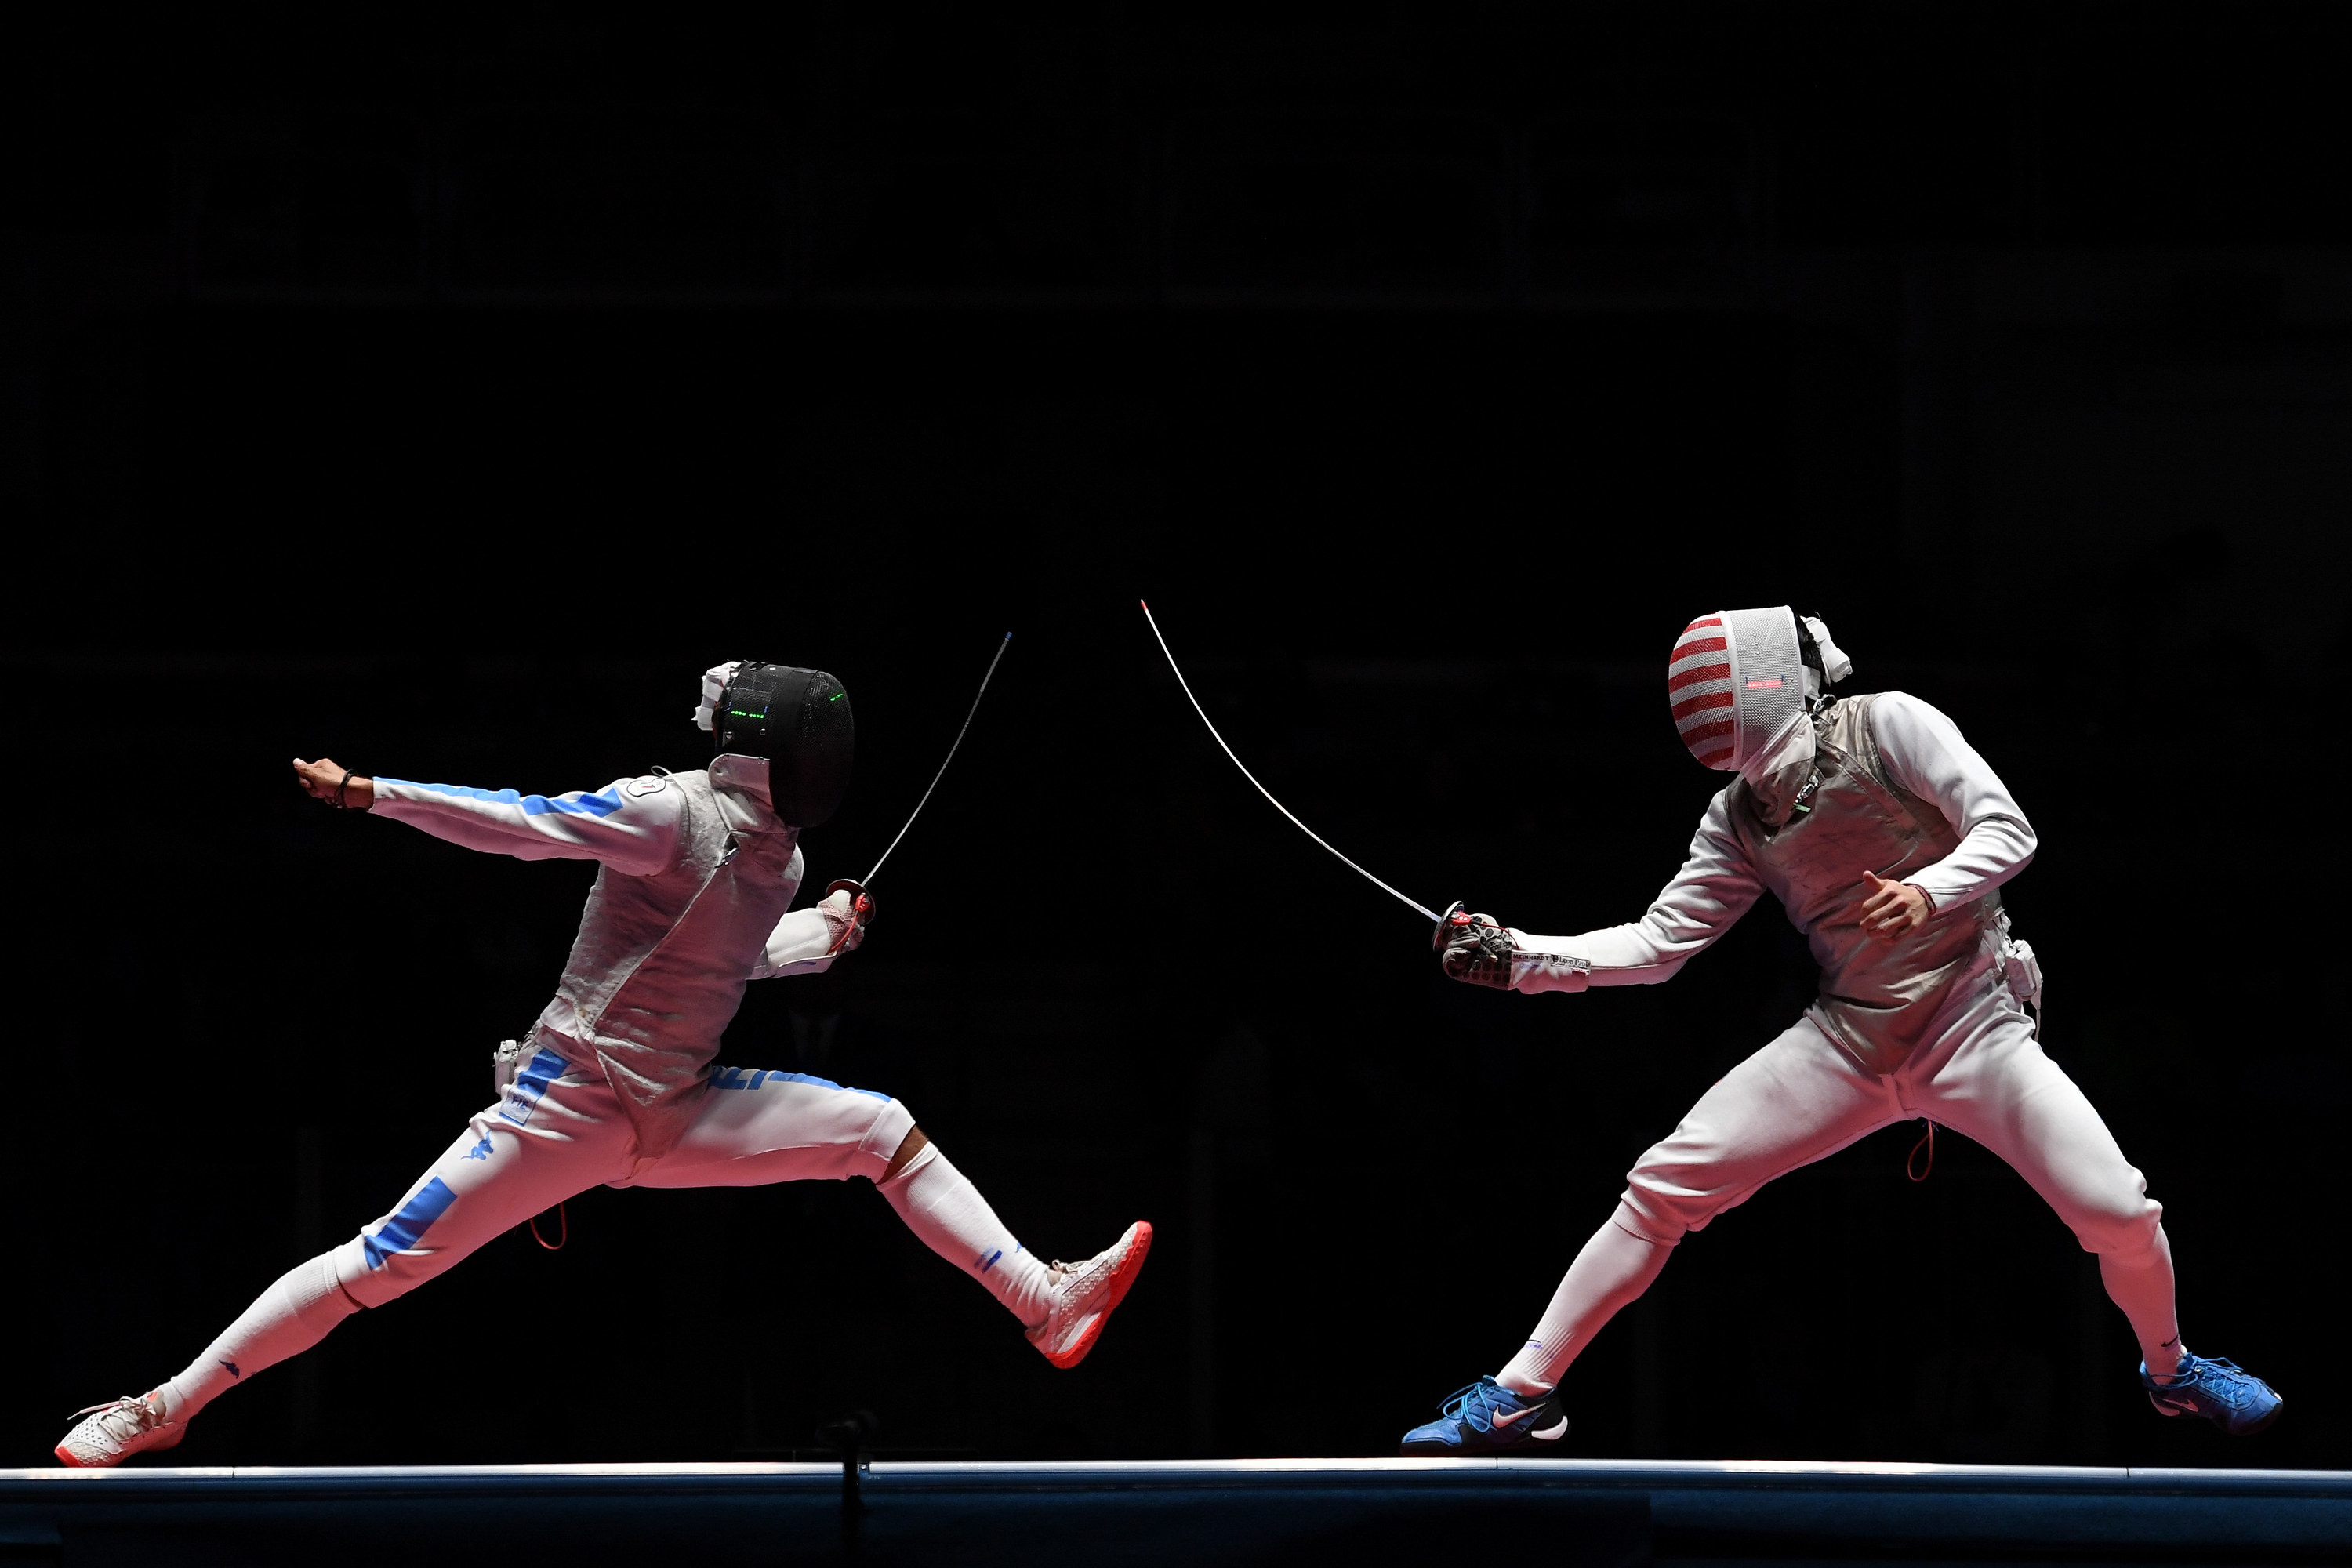 Two people fencing with thin swords